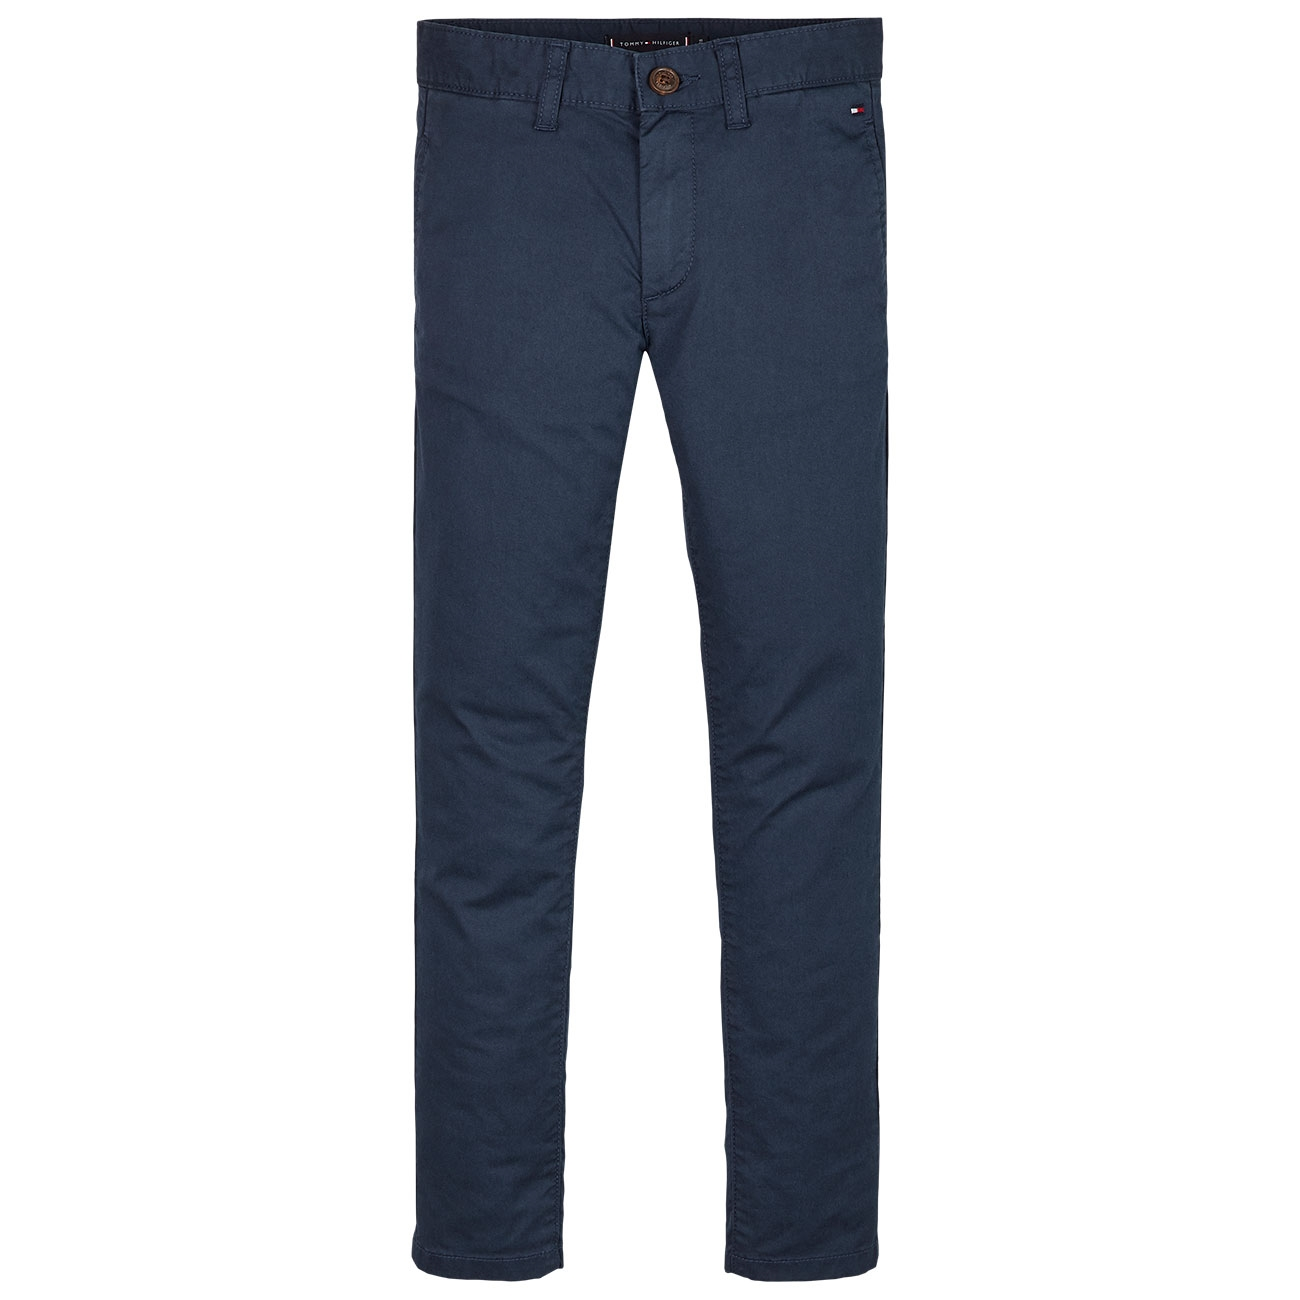 tommy-hilfiger-chinos-bukser-pants-trousers-essential-twilight-navy-kb0kb0595-c87-1